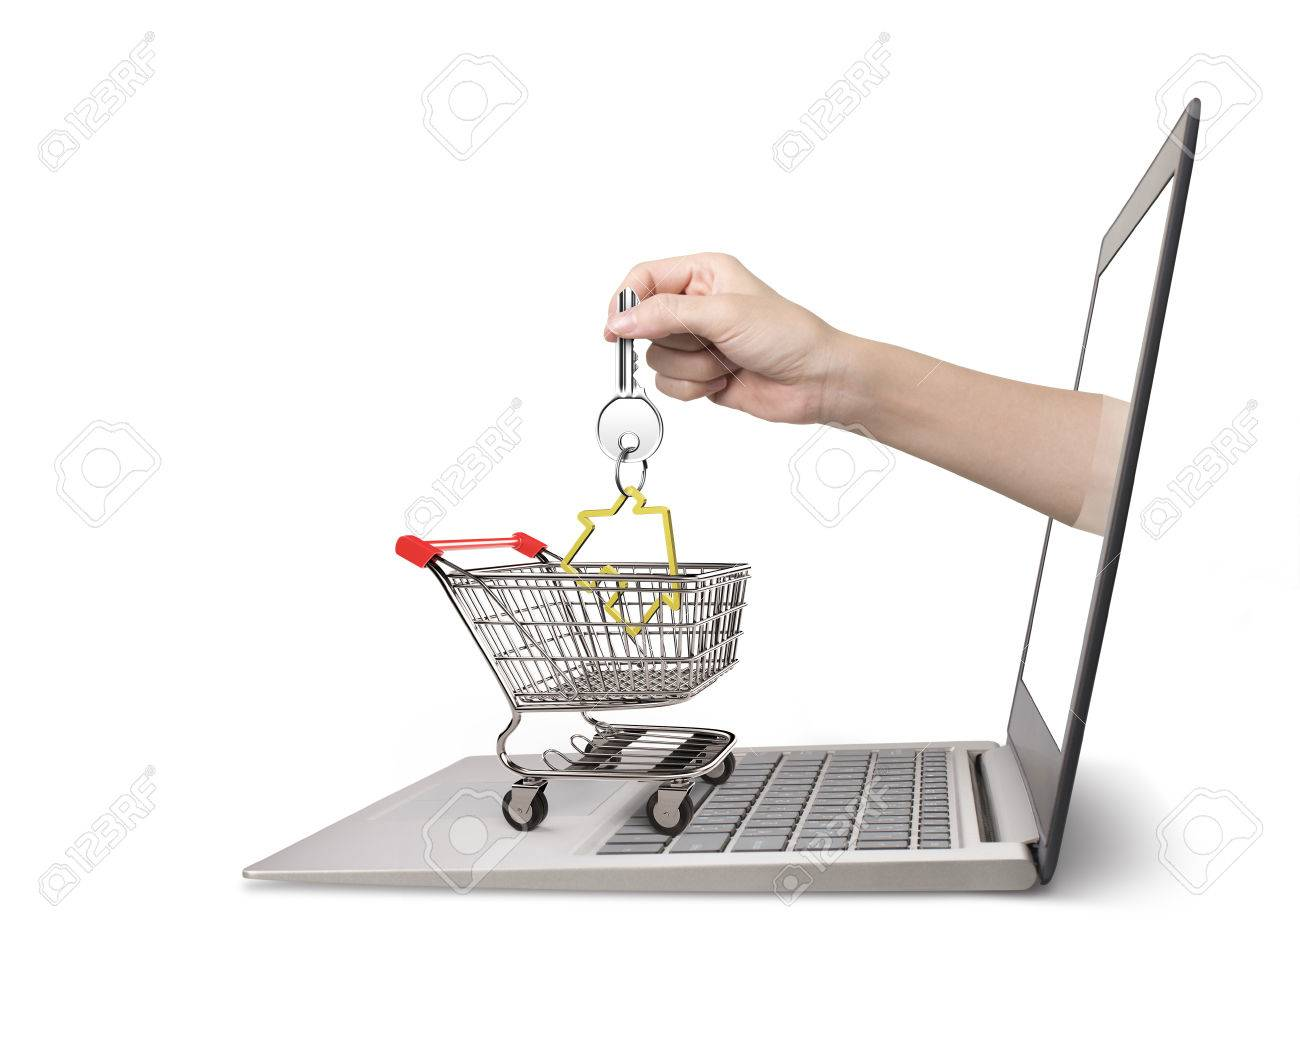 Female hand from laptop screen taking house key in the shopping female hand from laptop screen taking house key in the shopping cart isolated on white ccuart Choice Image